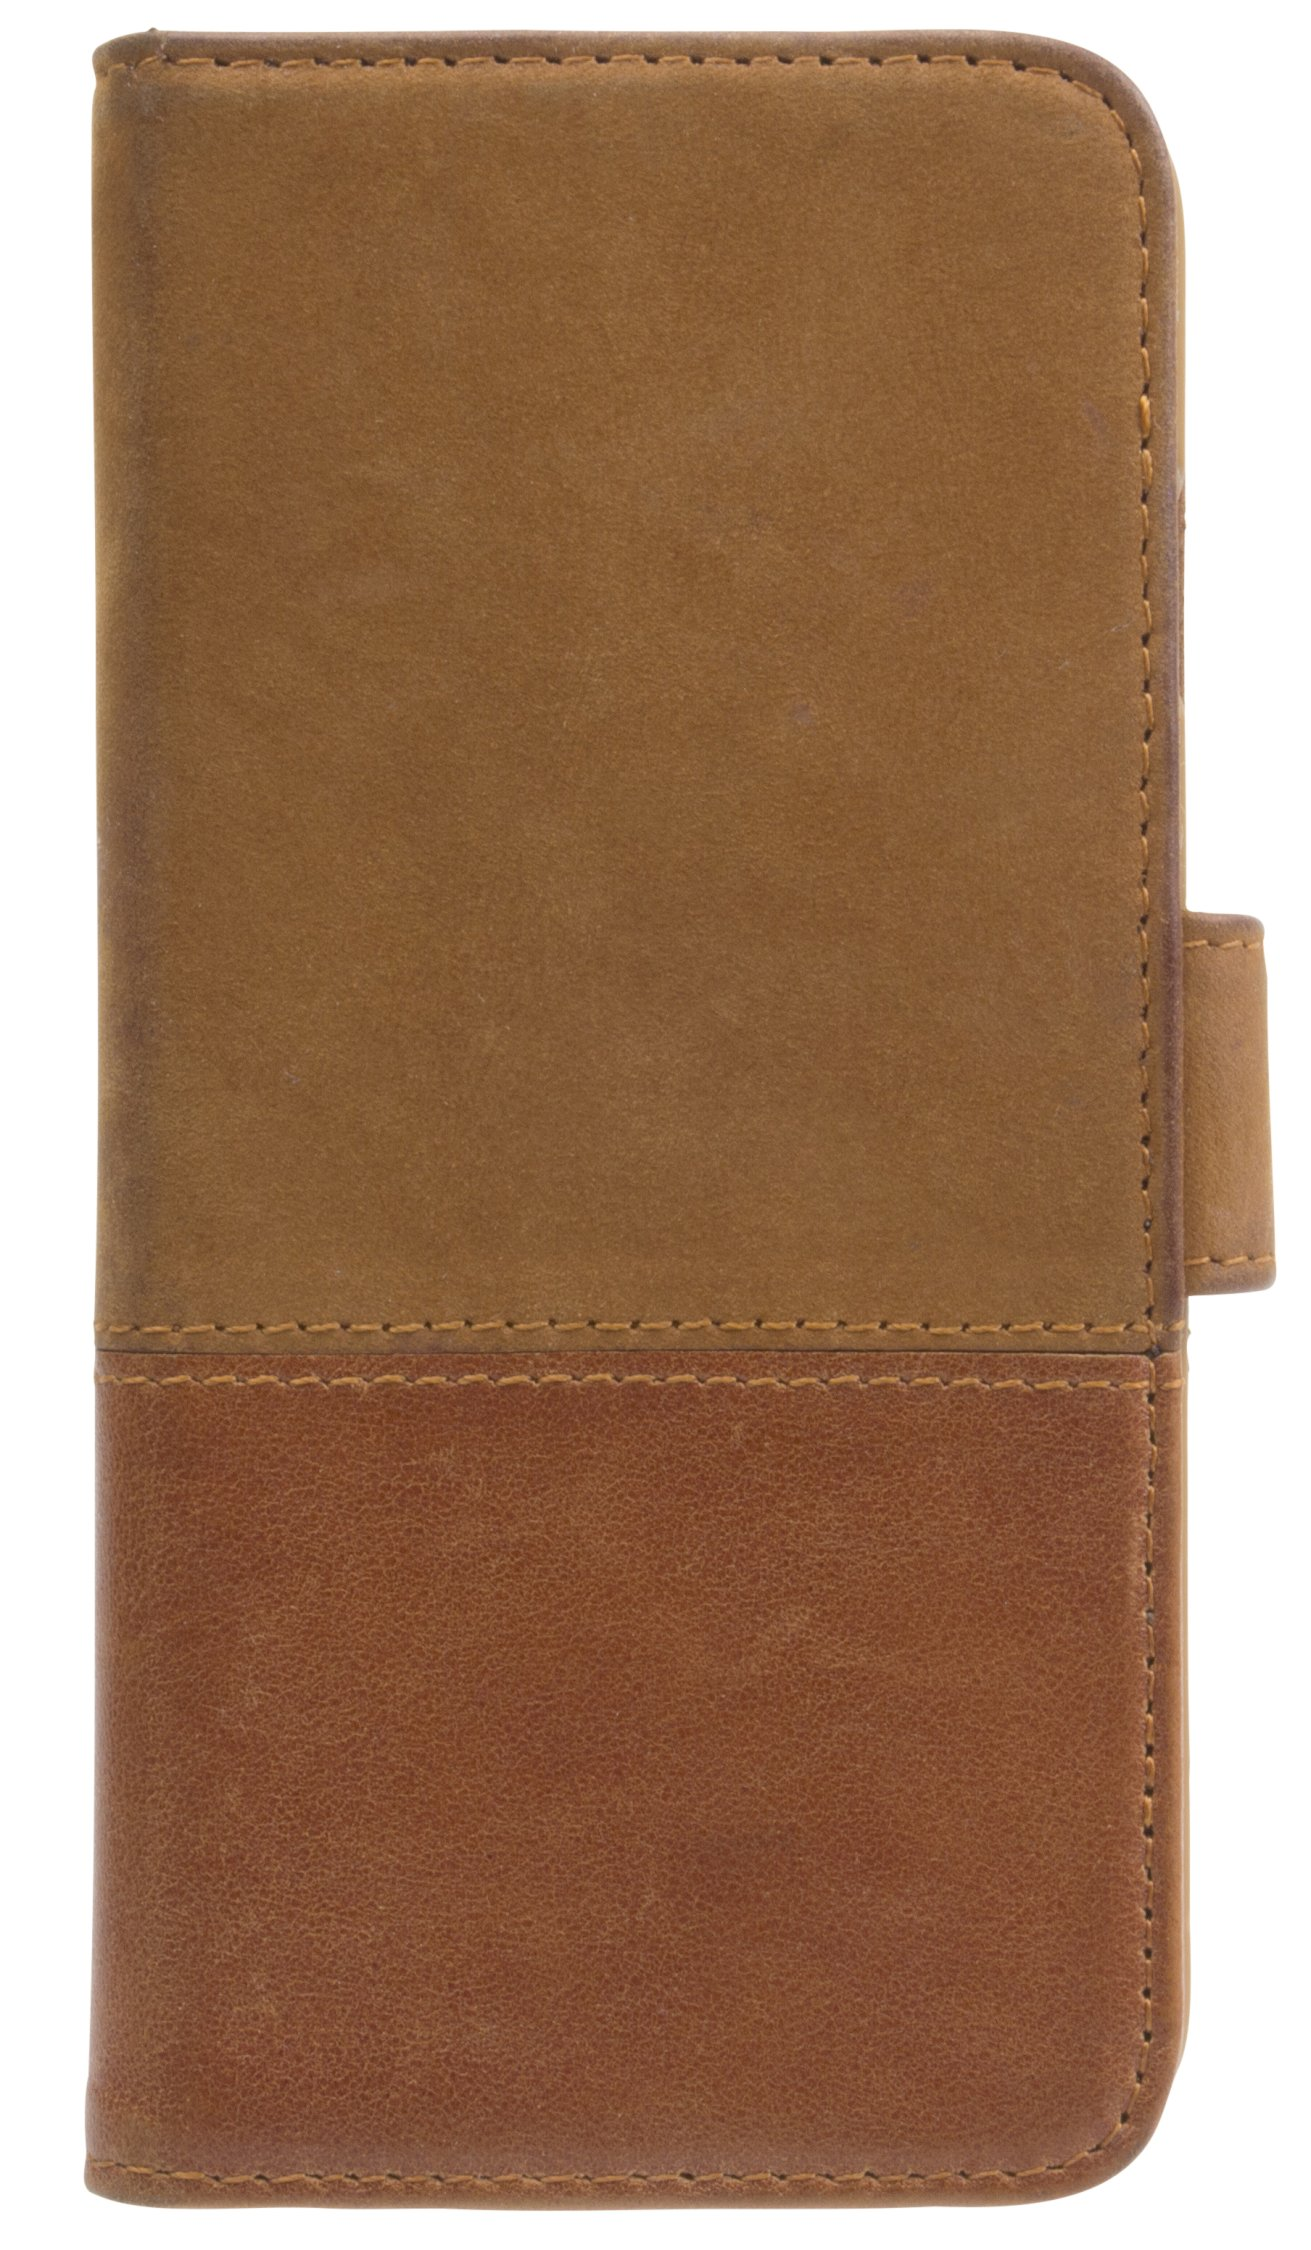 iPhone 6s/6, selected wallet leather/suede, brown